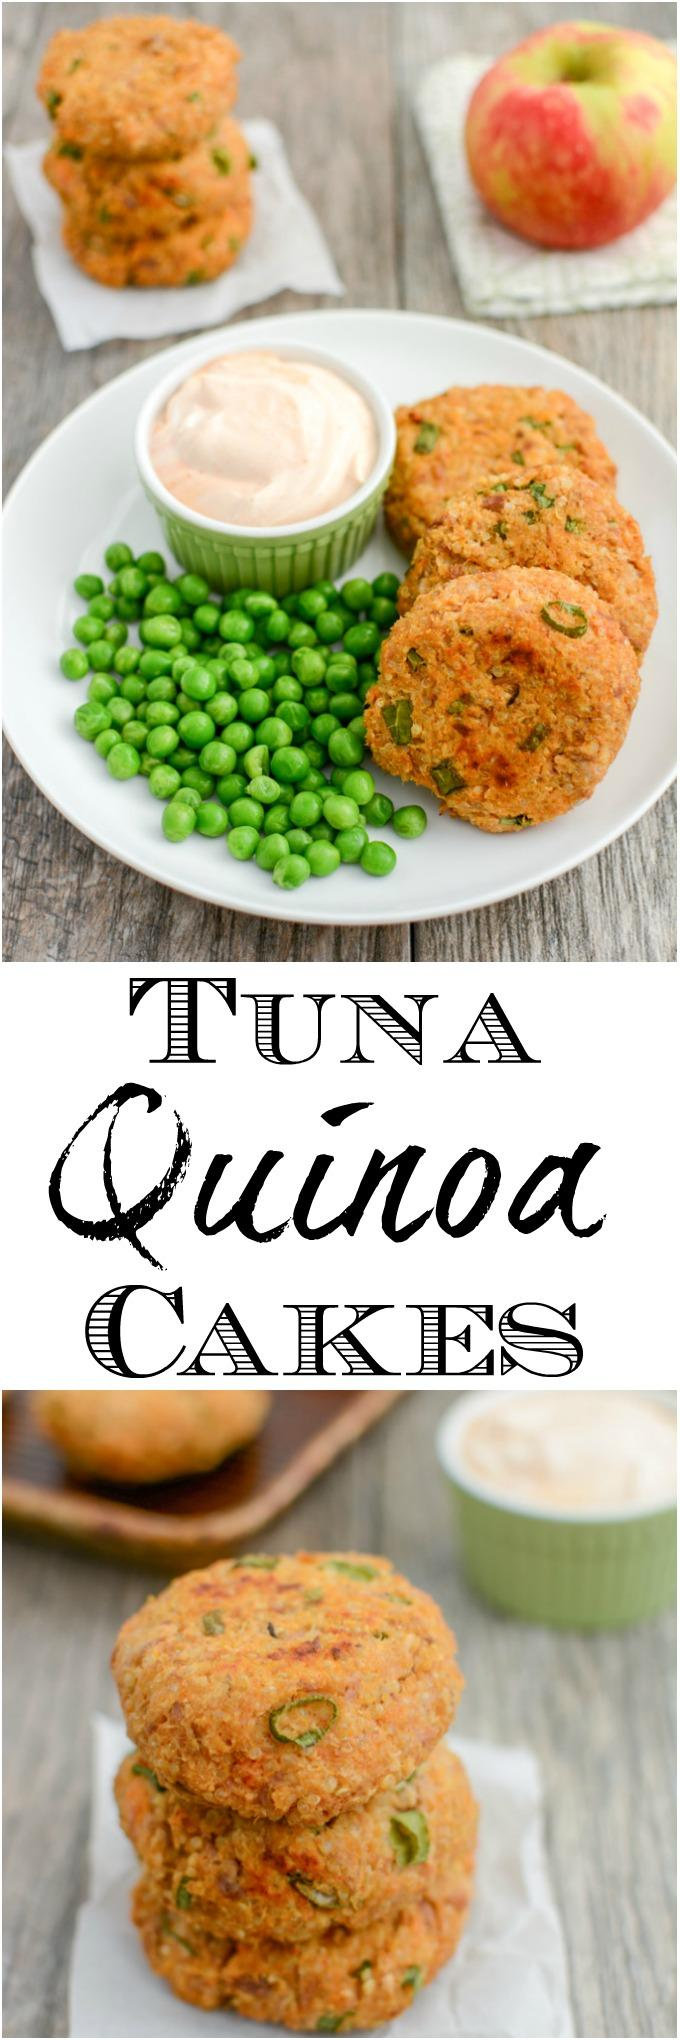 These Tuna Quinoa Cakes are a great way to add some extra protein to your day. Eat them plain, put them on a bun, or use them to top your salad for a healthy lunch or dinner!